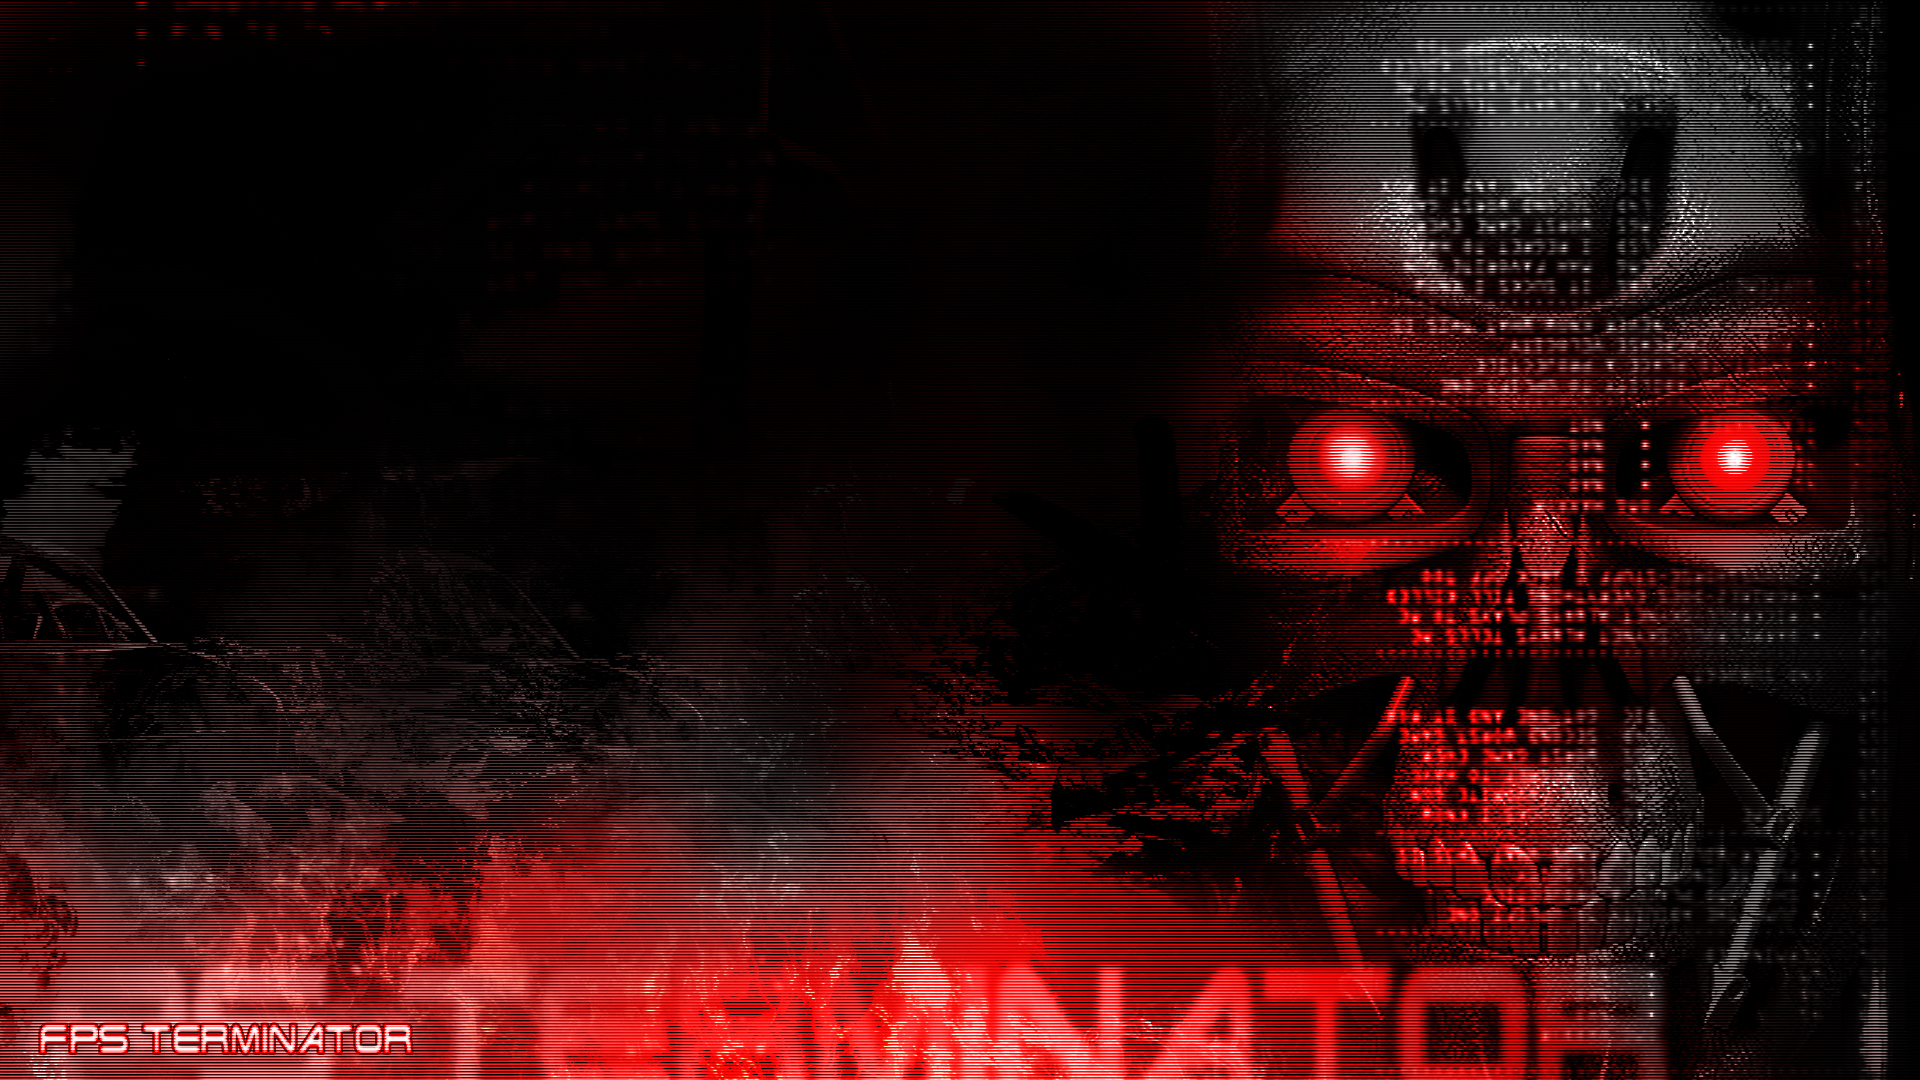 terminator widescreen computer wallpapers skynet